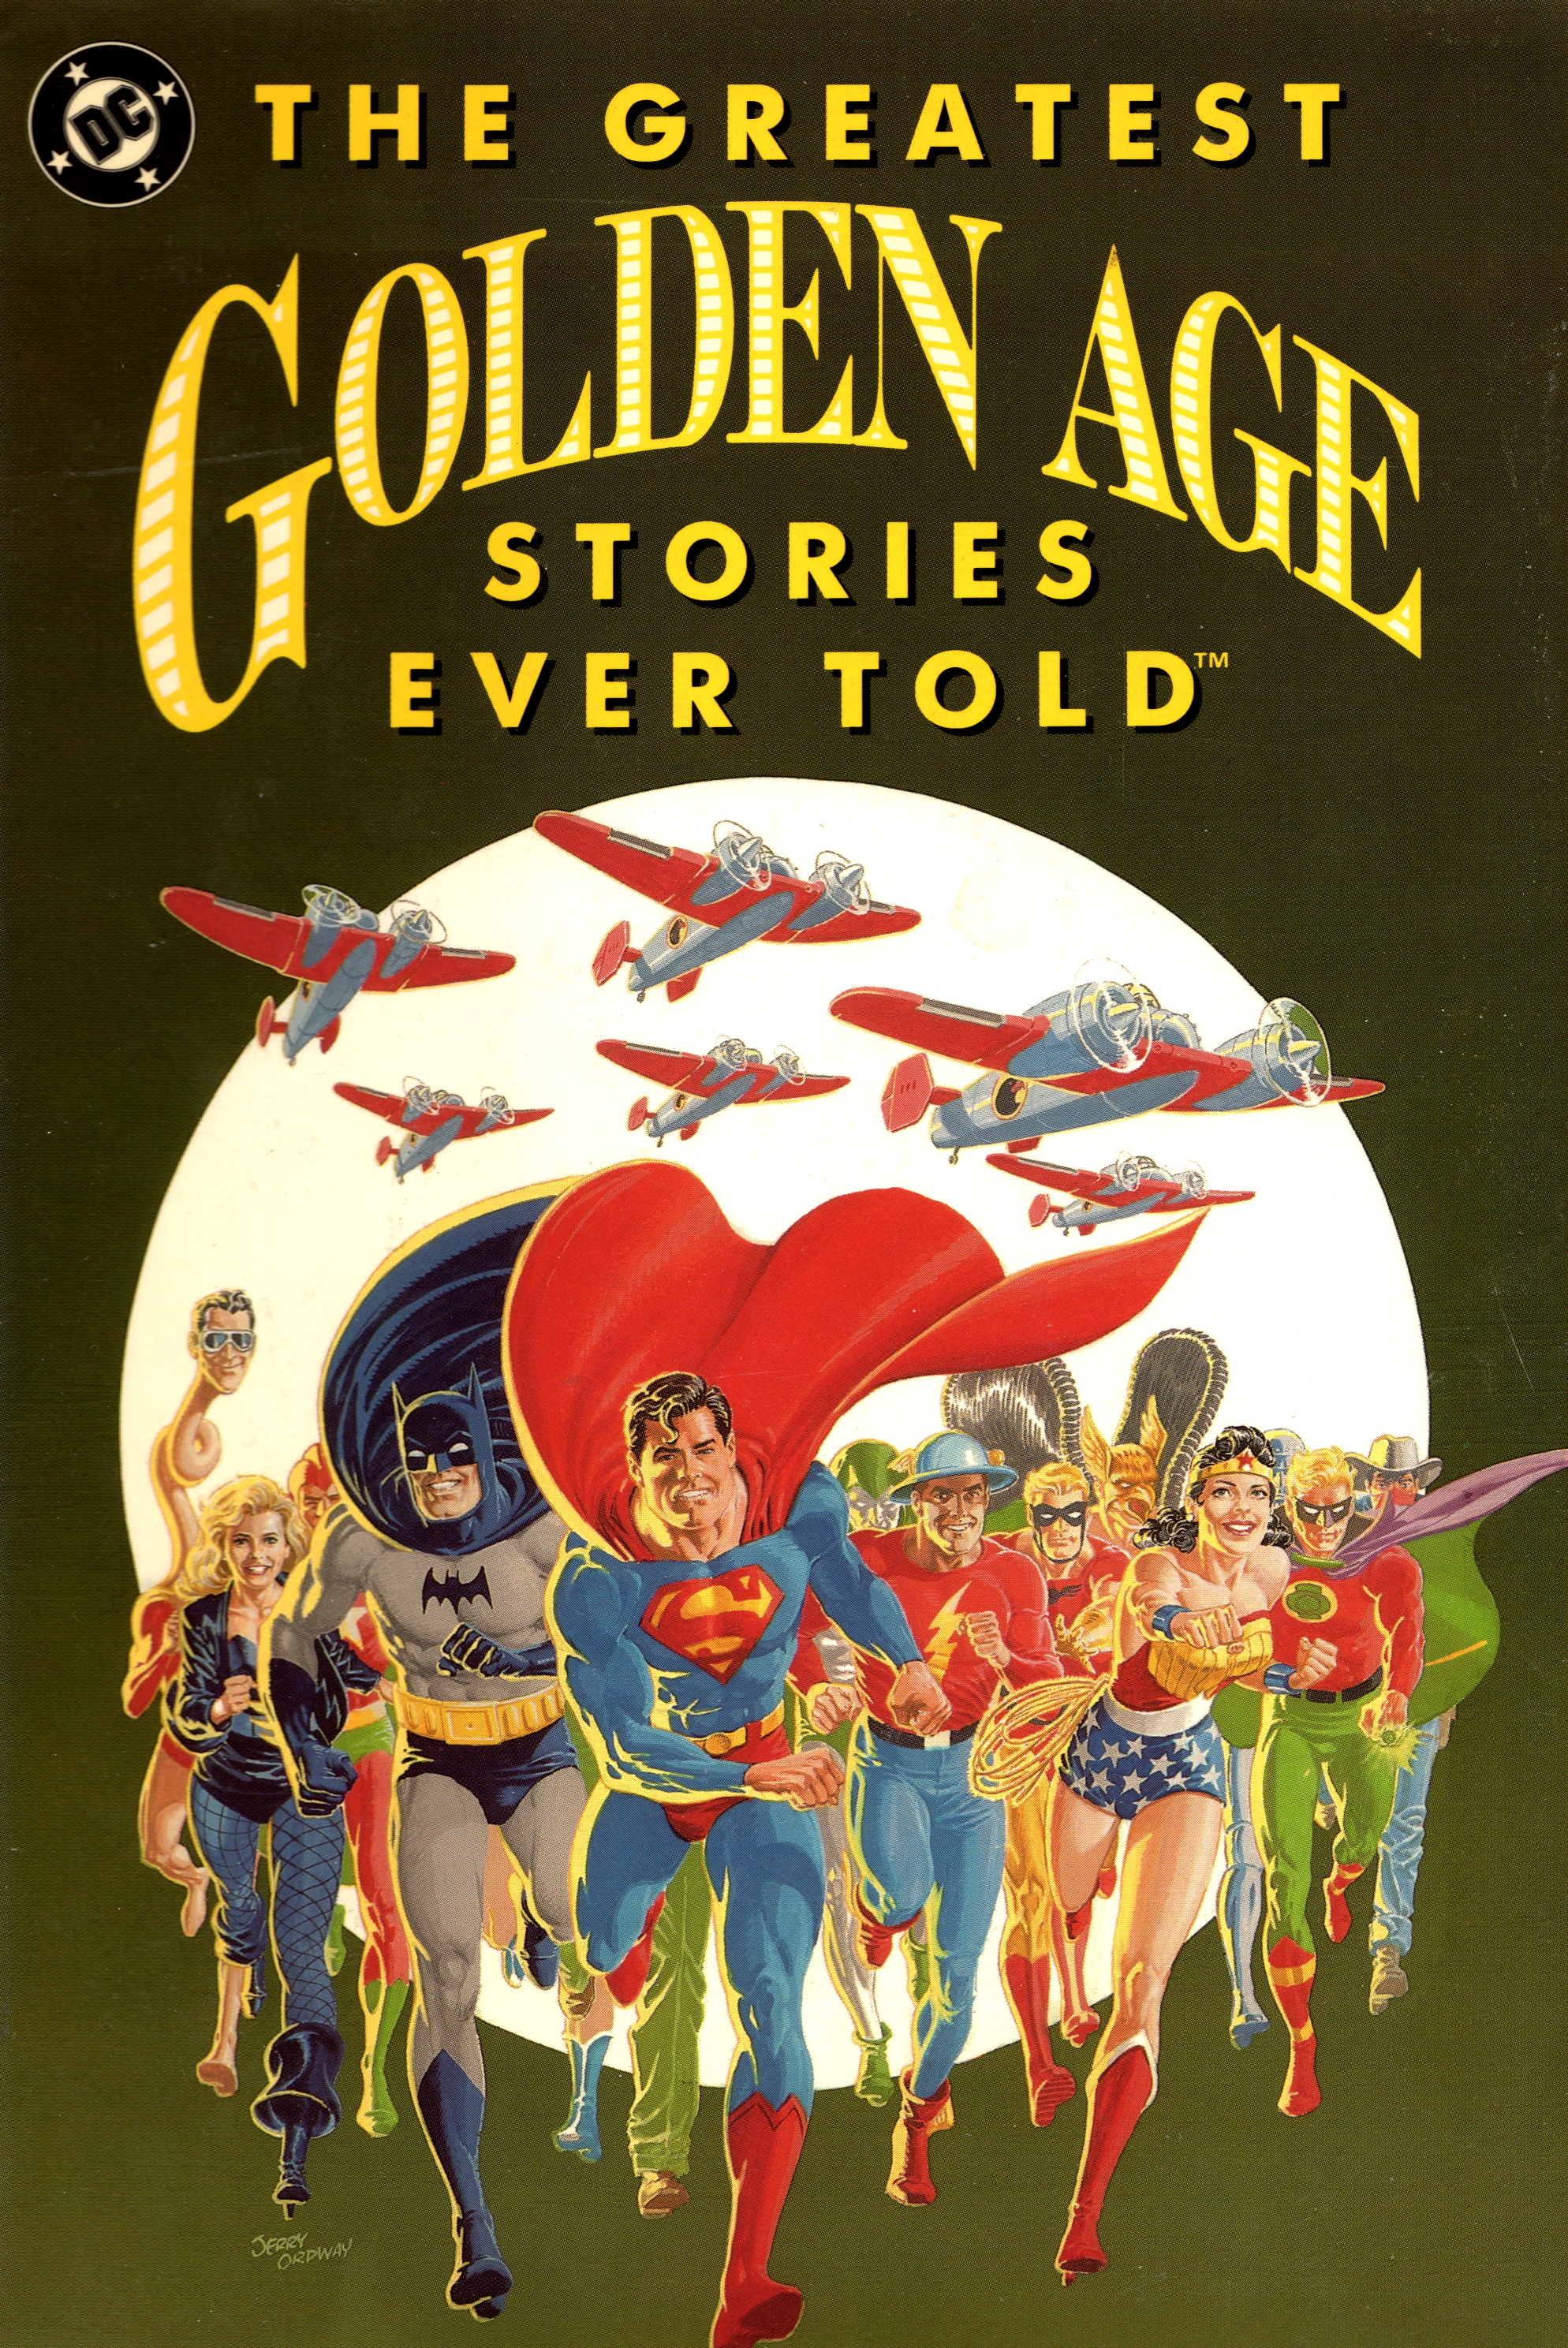 The Greatest Golden Age Stories Ever Told (Collected)